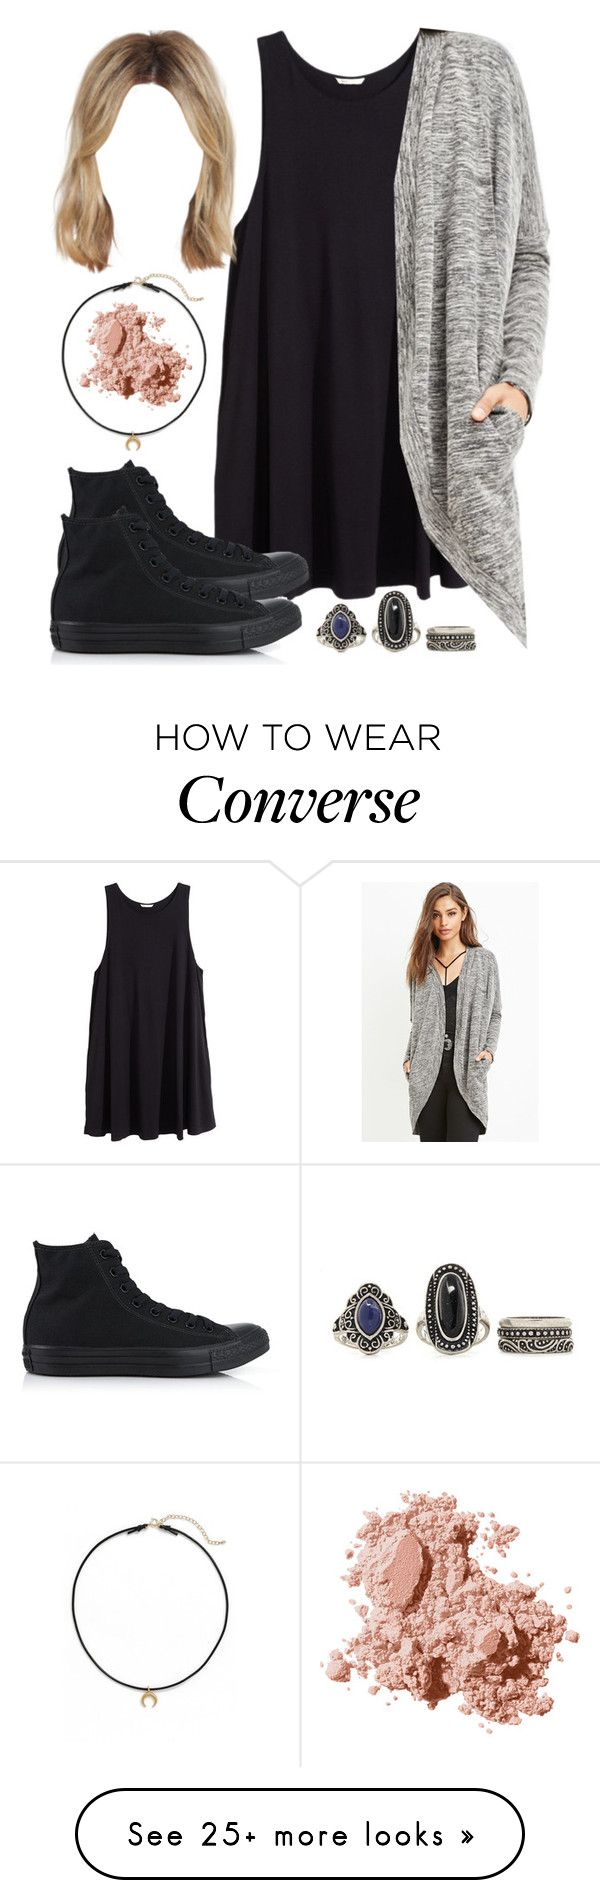 """Edgy Hanna Marin inspired outfit with all black Converse sneakers"" by liarsstyle on Polyvore featuring H&M, Forever 21, Converse, Dogeared and Bobbi Brown Cosmetics"